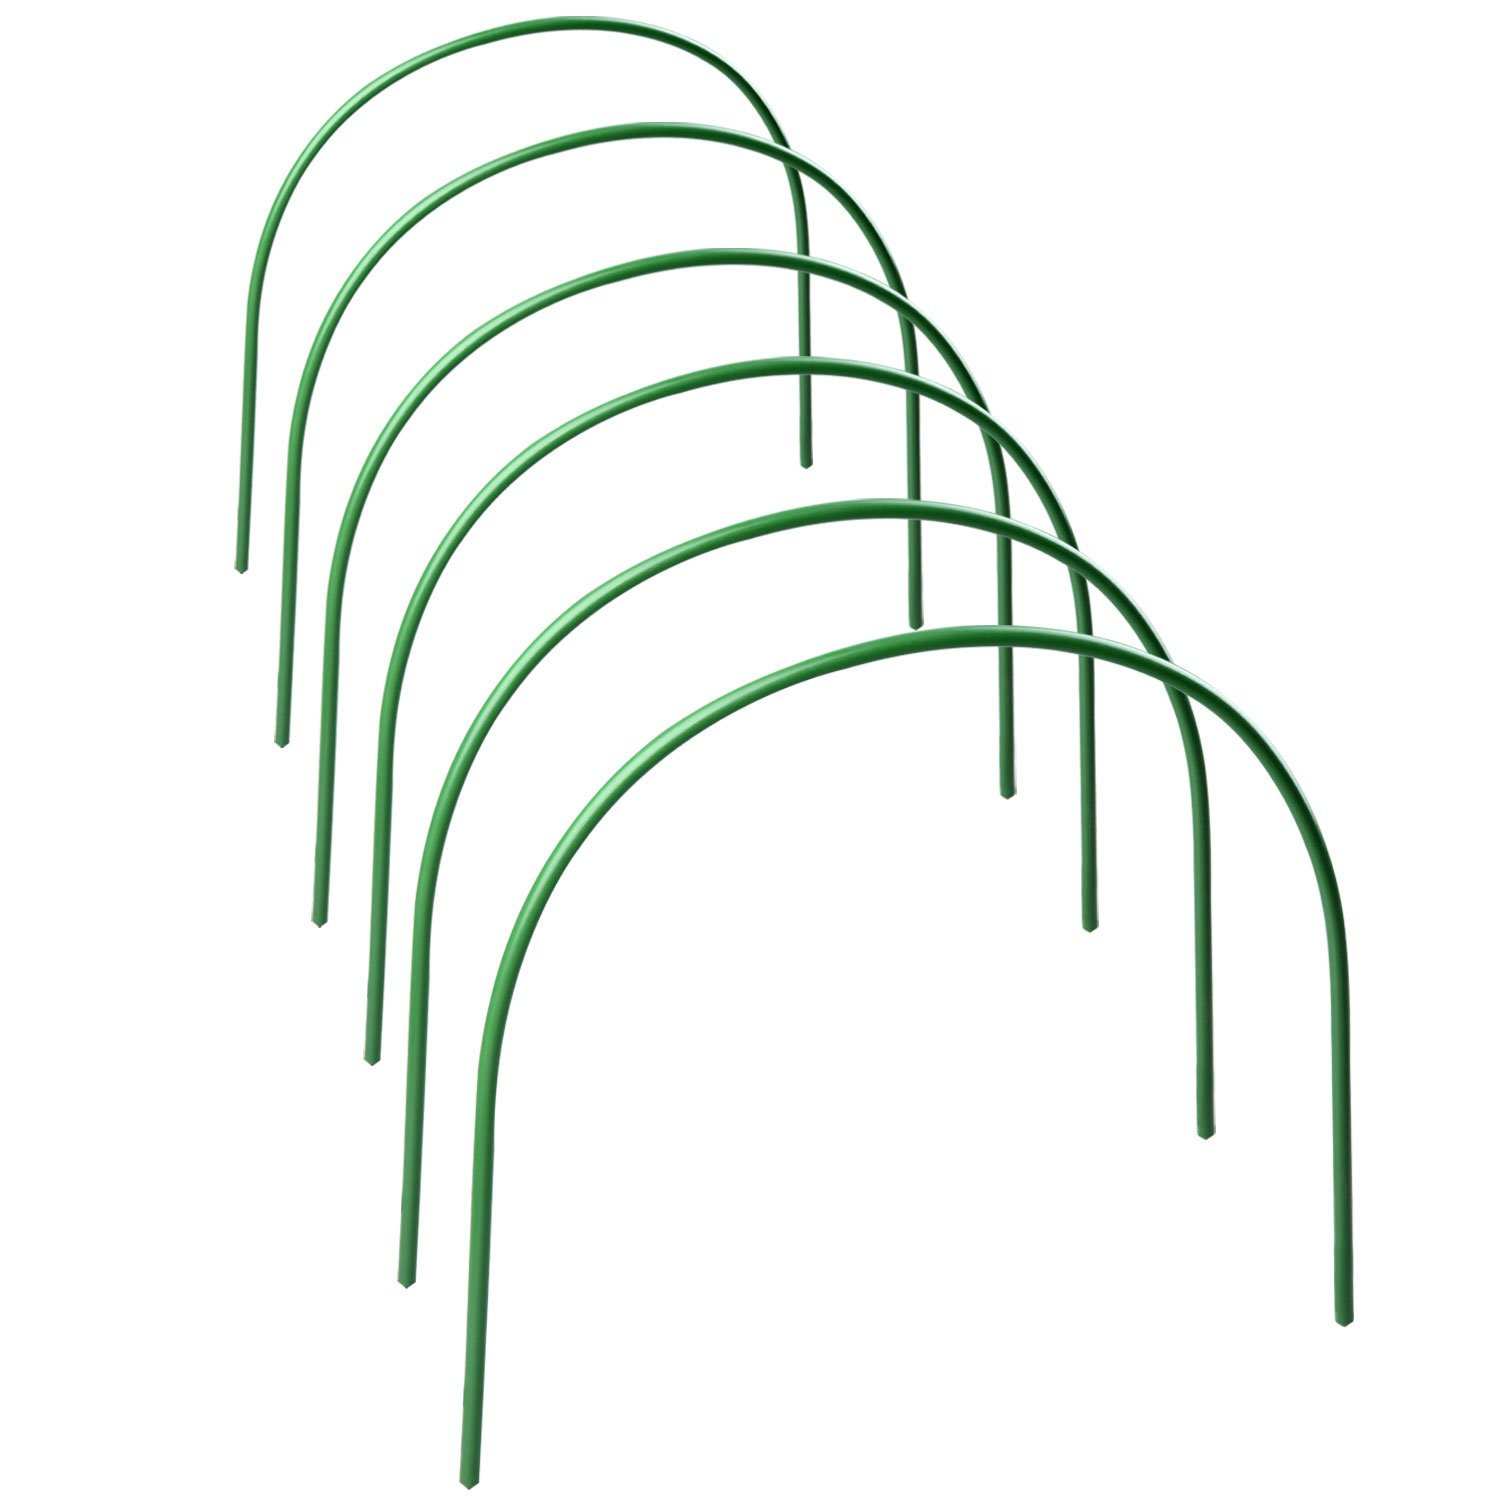 Greenhouse Hoops for Plant Cover Support, 4ft long Plastic Coated Hoops Grow Tunnel Support Frame for Garden Fabric, Set of 6